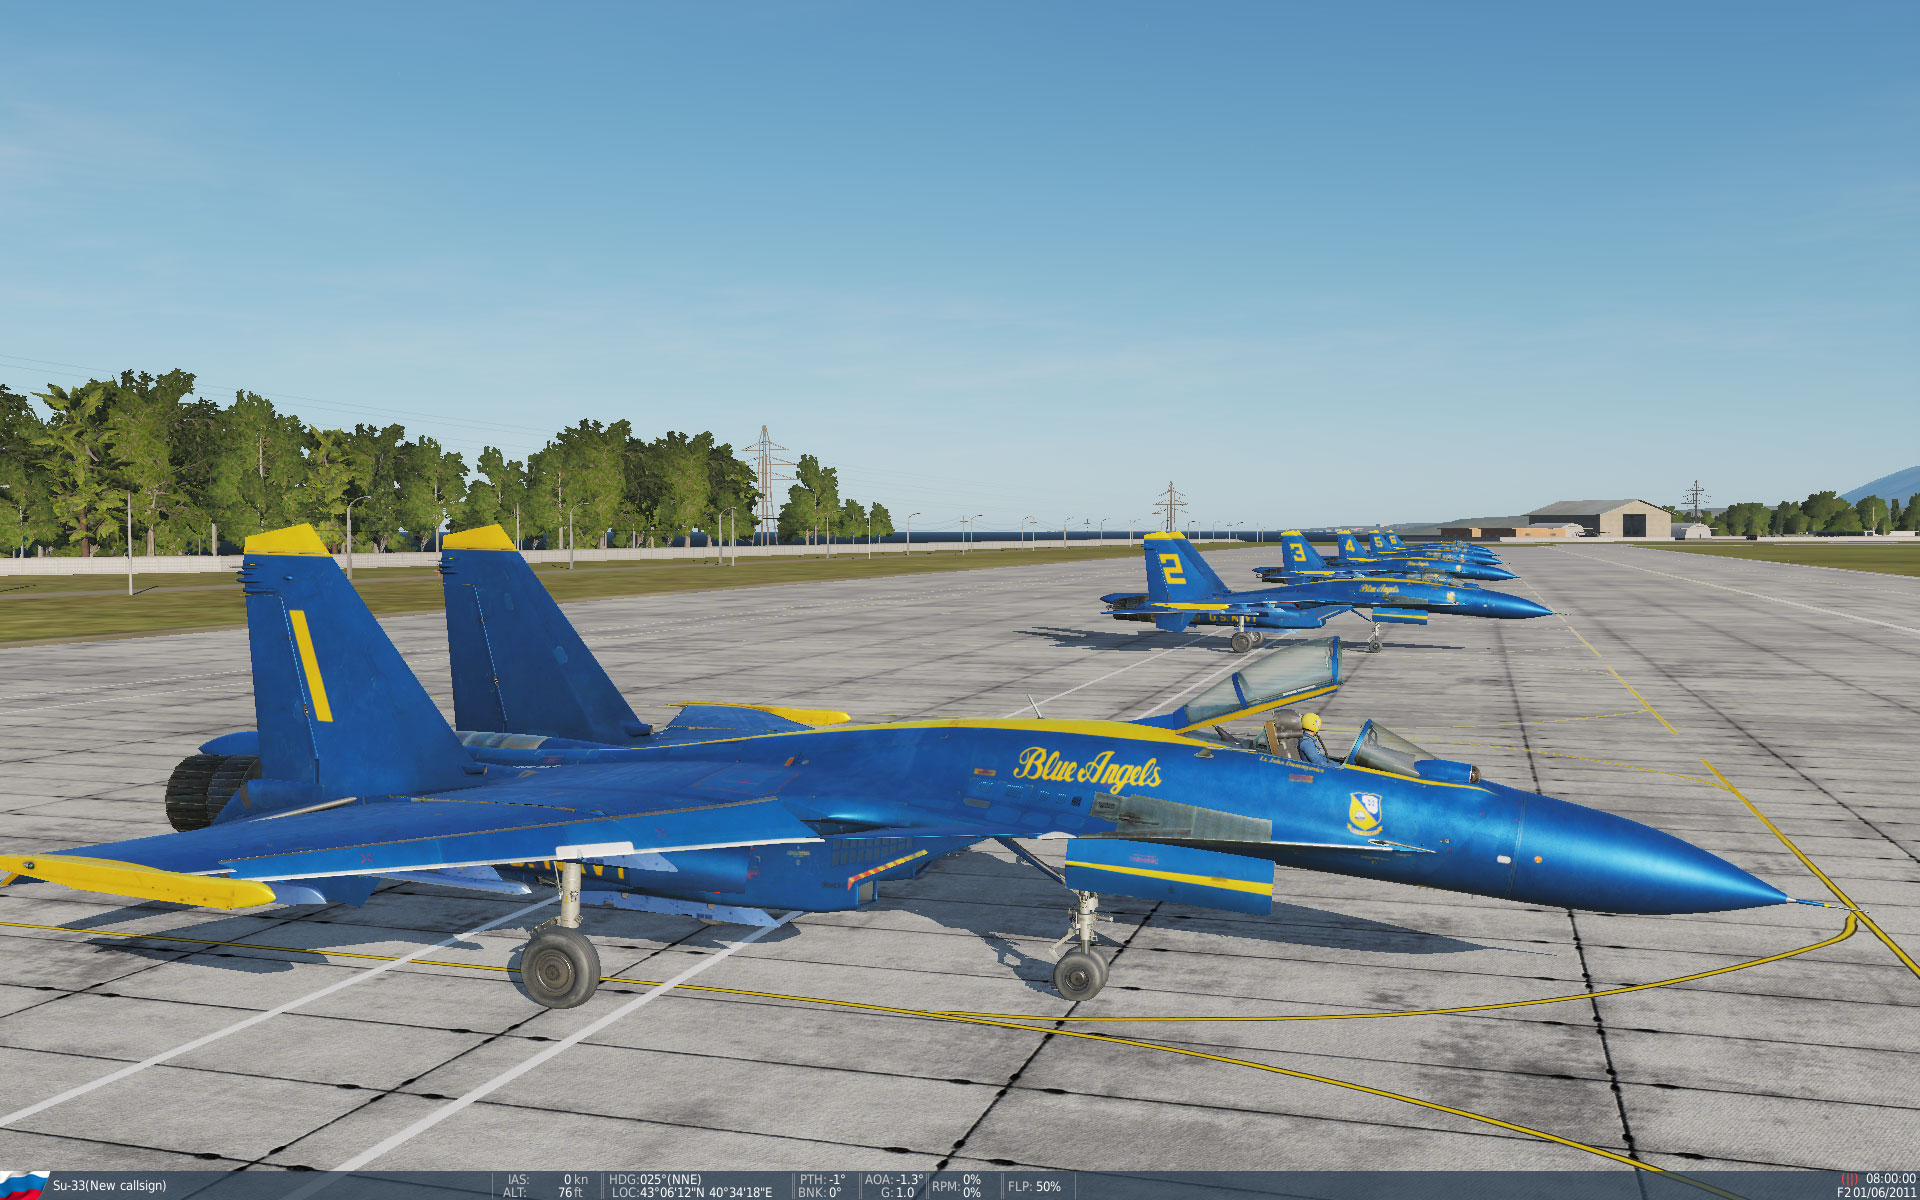 Blue Angels Full Team for SU-33